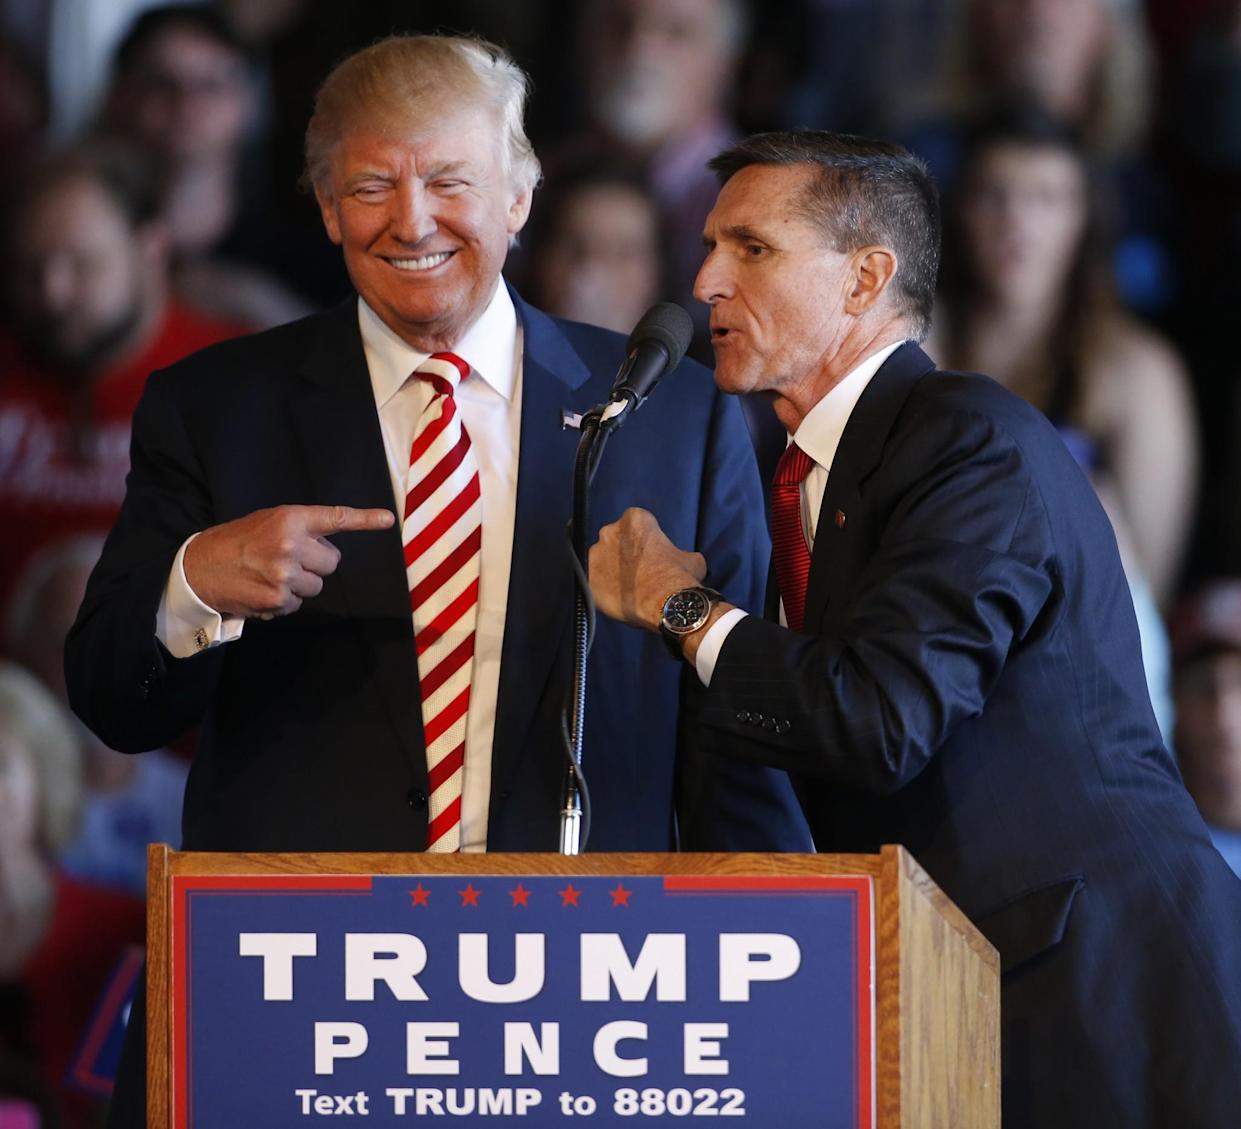 Donald Trump, left, jokes with retired Gen. Michael Flynn at a rally at Grand Junction Regional Airport on Oct. 18, 2016, in Grand Junction, Colo. (Photo: George Frey/Getty Images)